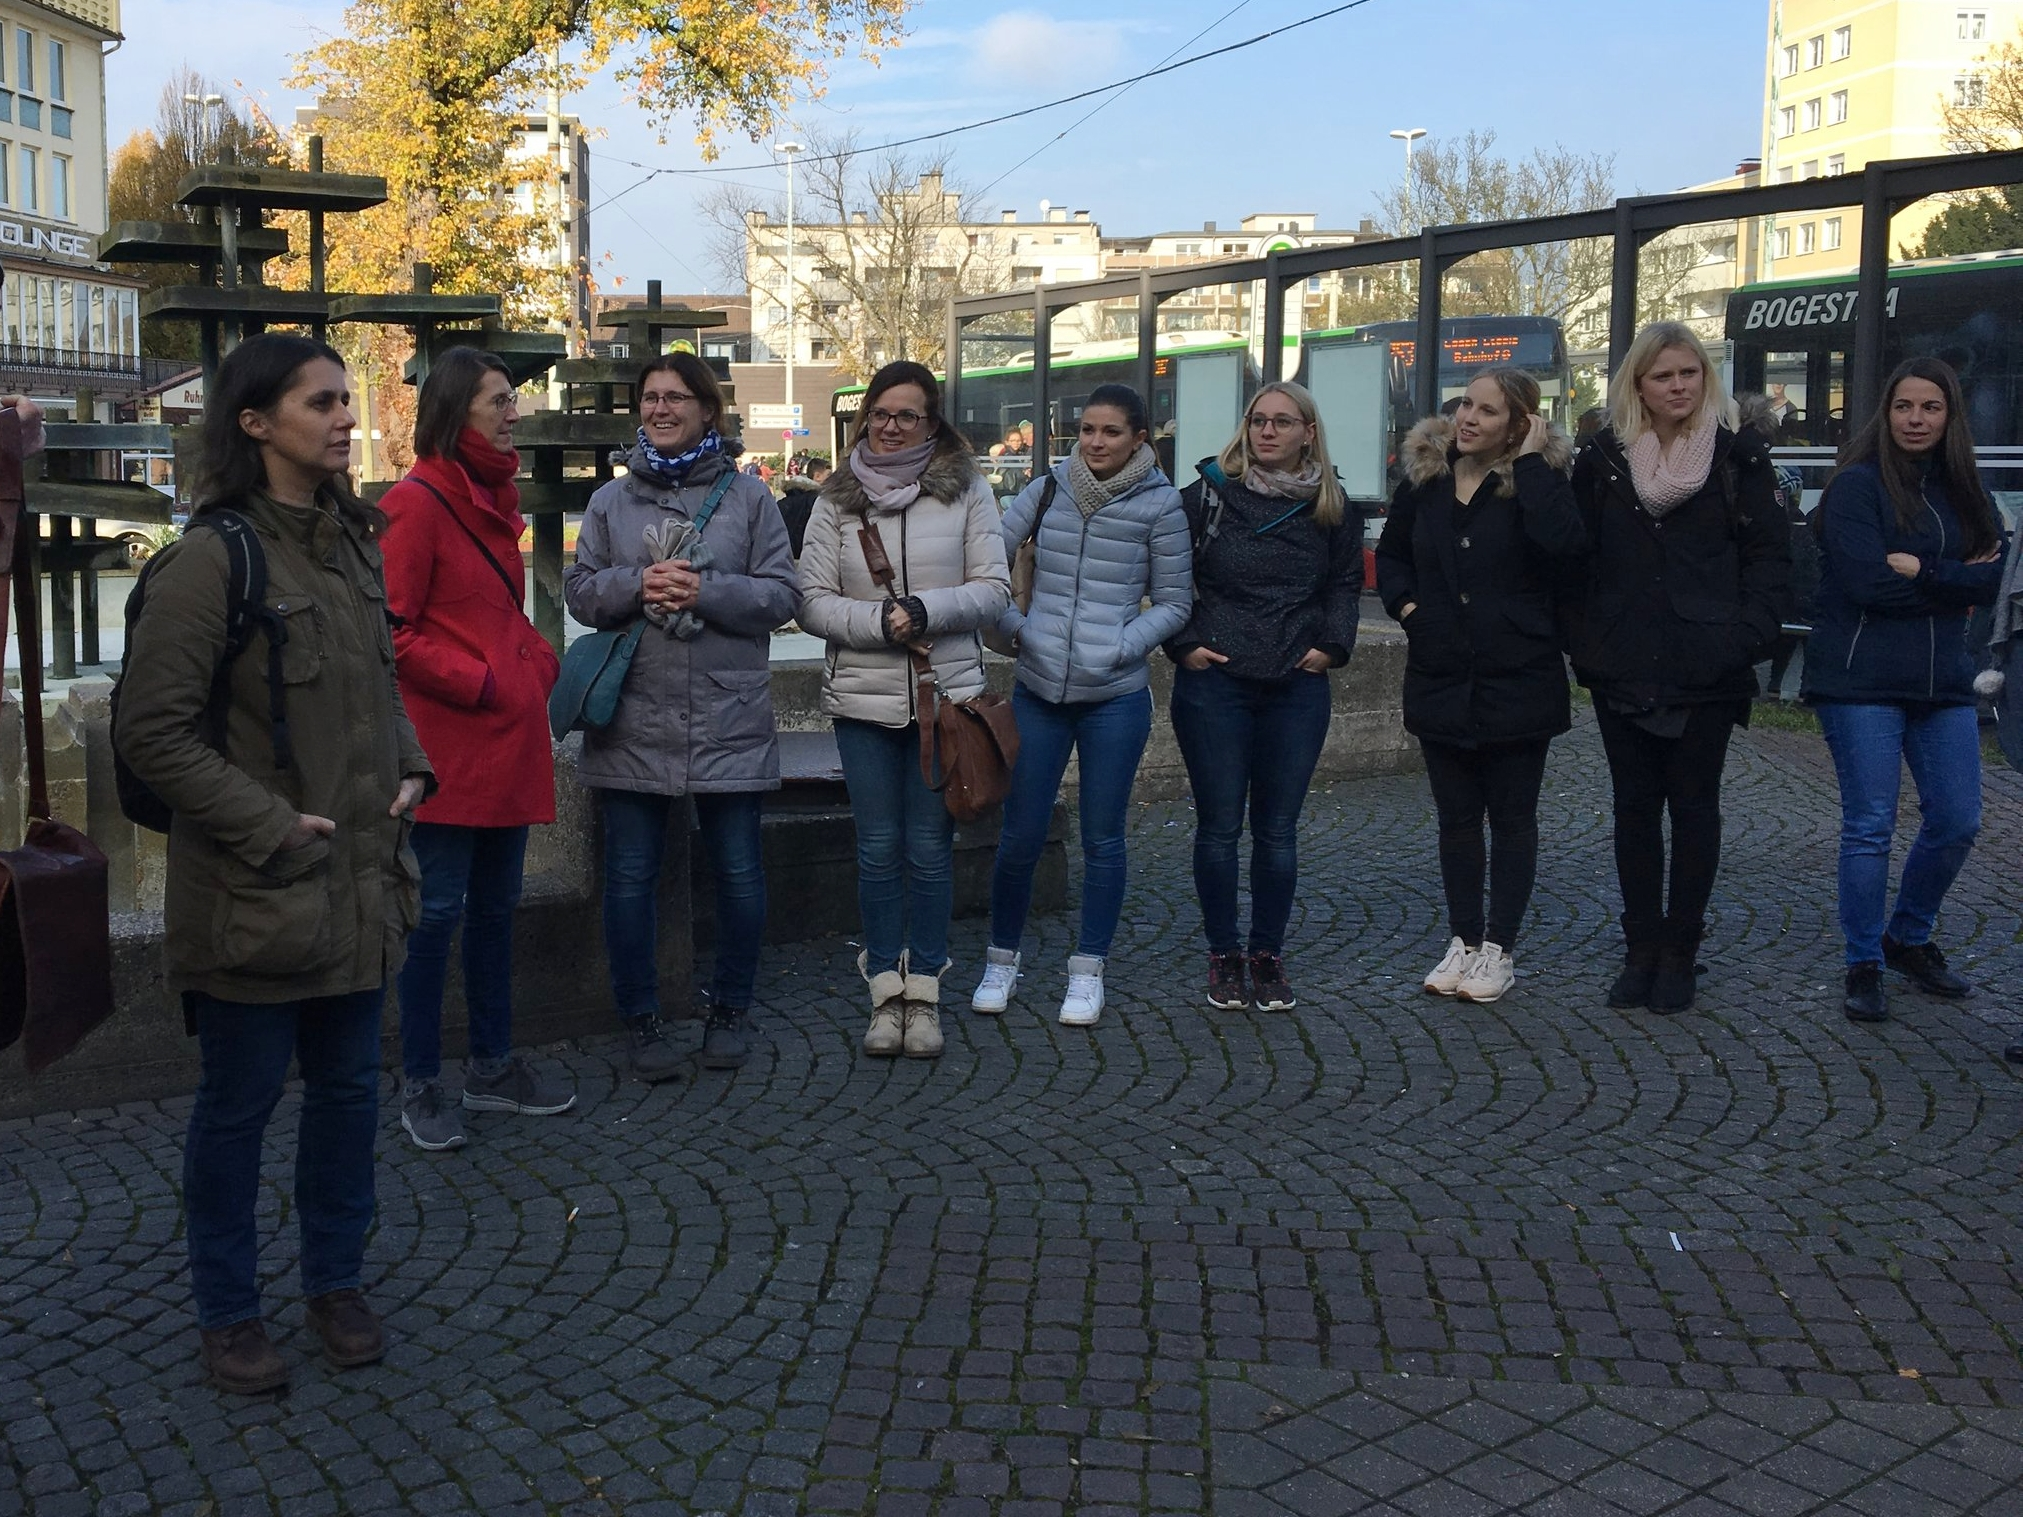 Students from the Hochschule für Gesundheit preparing to collect data using the noise survey app.